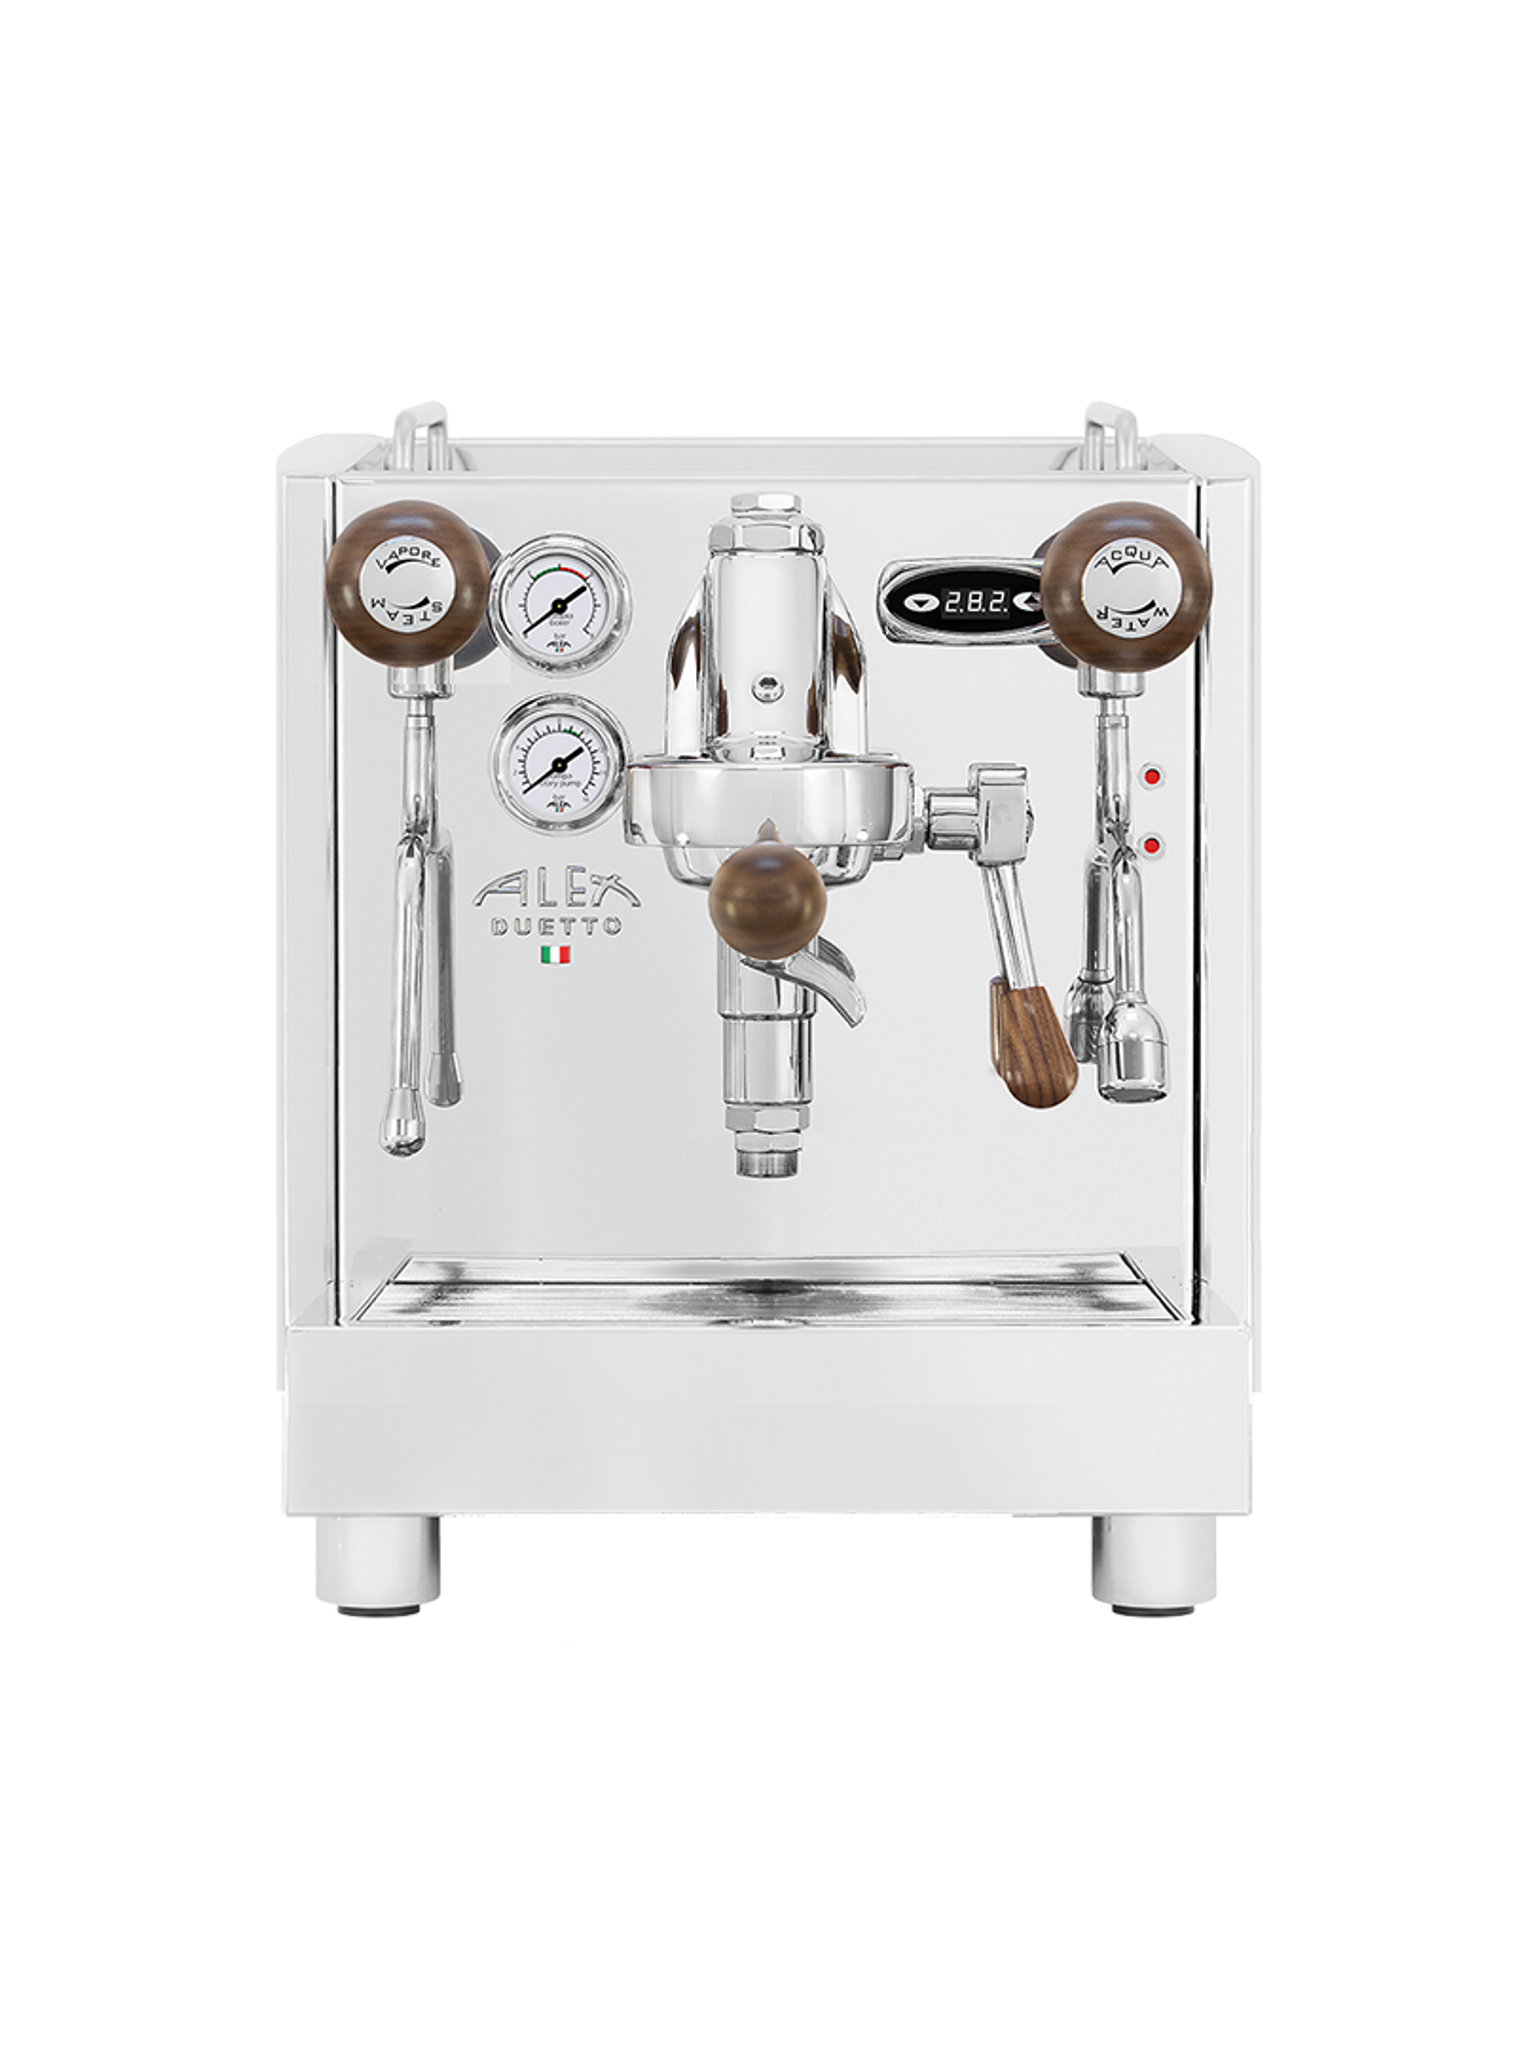 Buy The Izzo Espresso Alex Duetto IV Machine Stunningly Designed With Power and Functionality